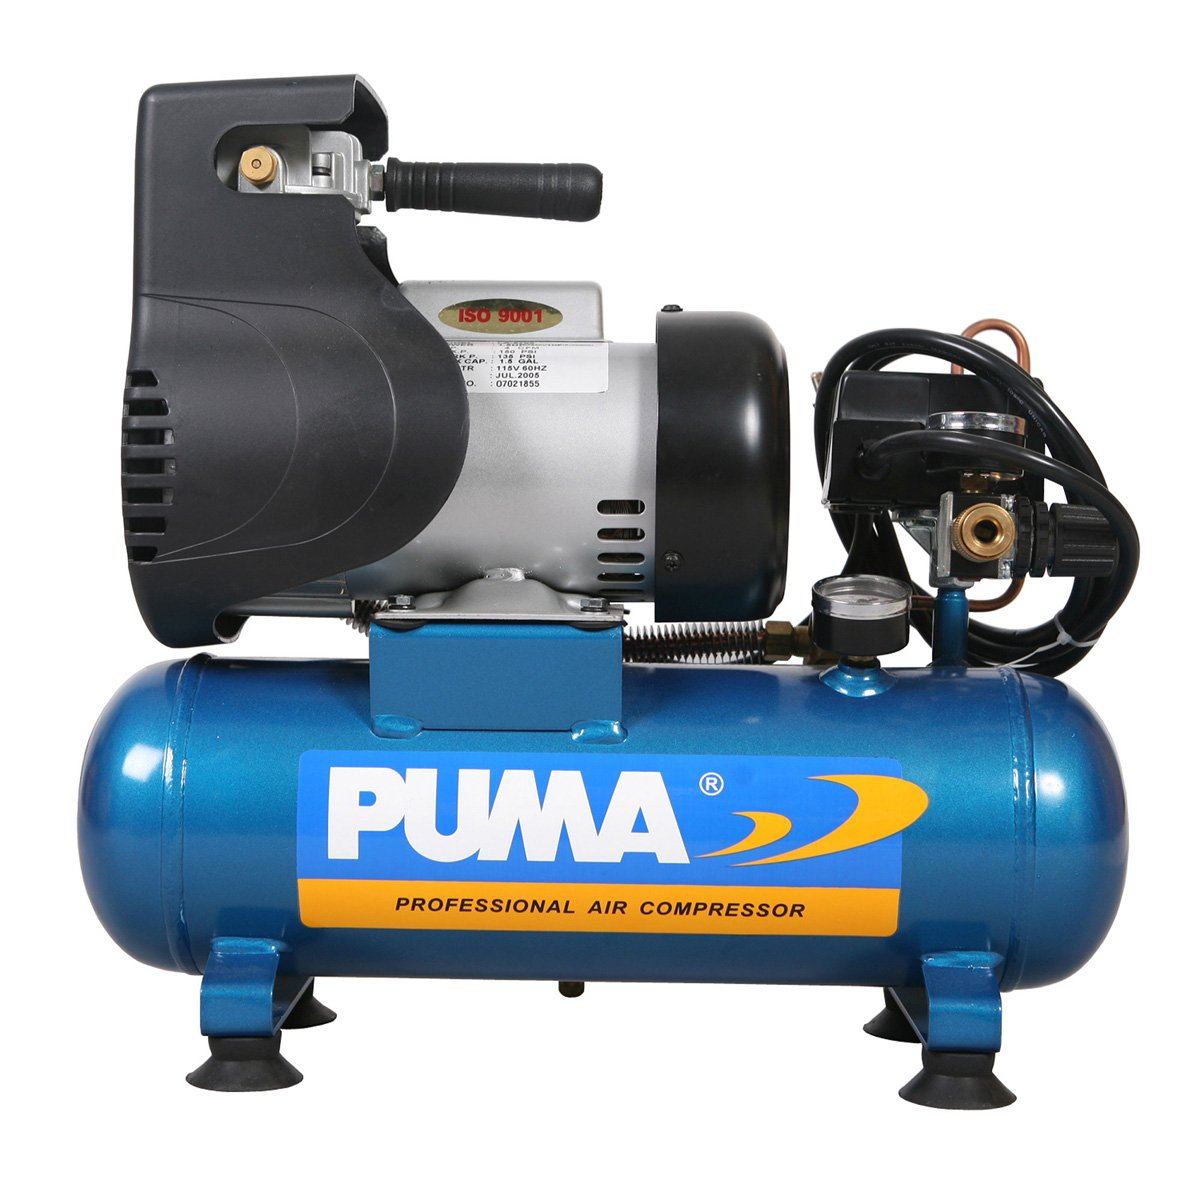 Puma Air Compressors LA-5706 Professional Direct Drive Compressor